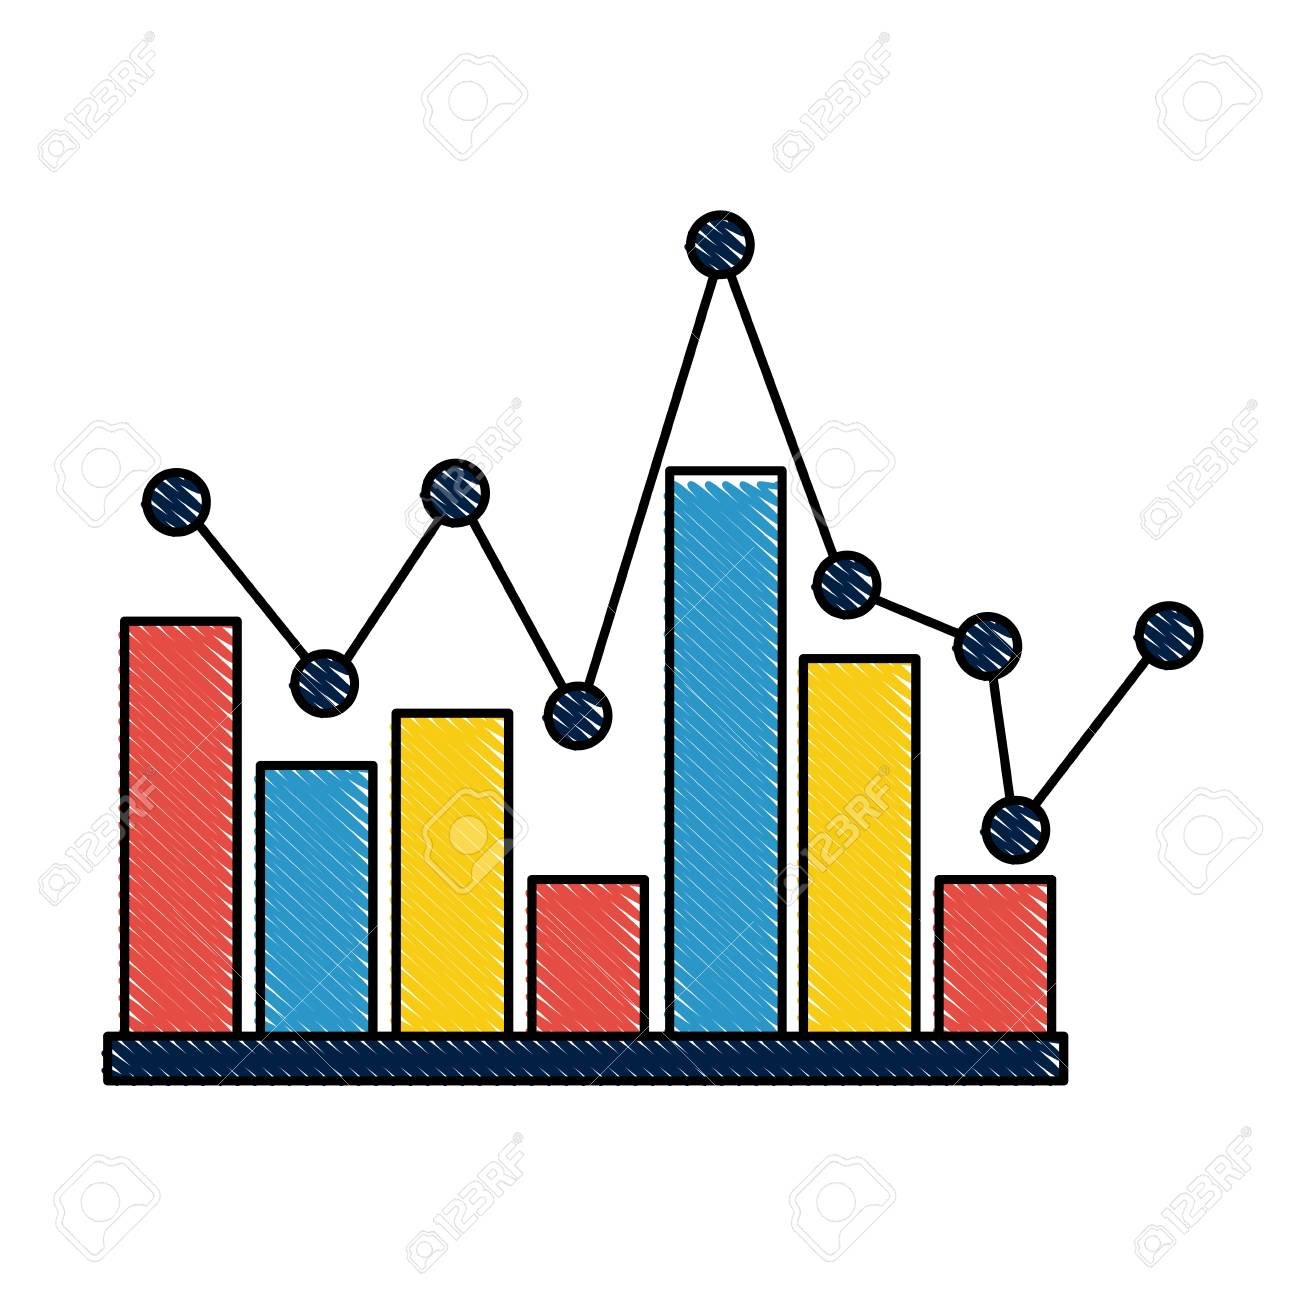 statistics bar graph pointed line design vector illustration.